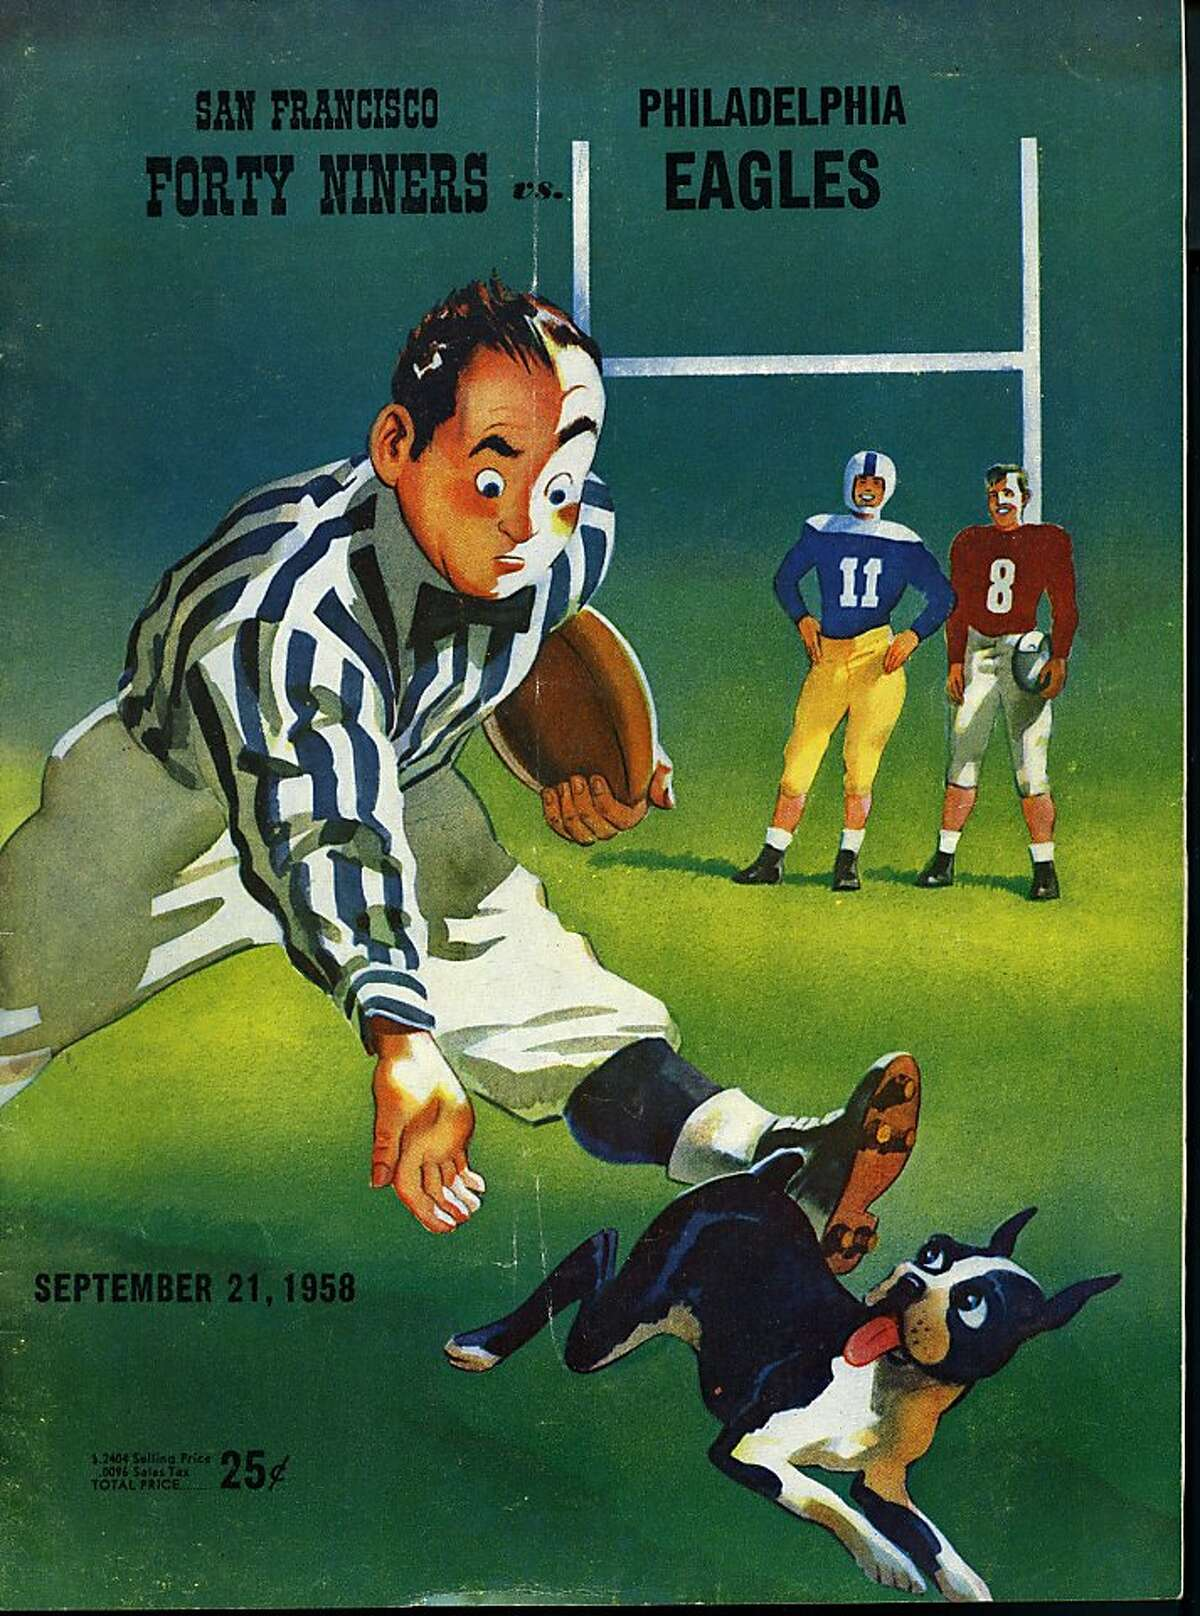 San Francisco 49ers official game programs 1958 courtesy Don Figone